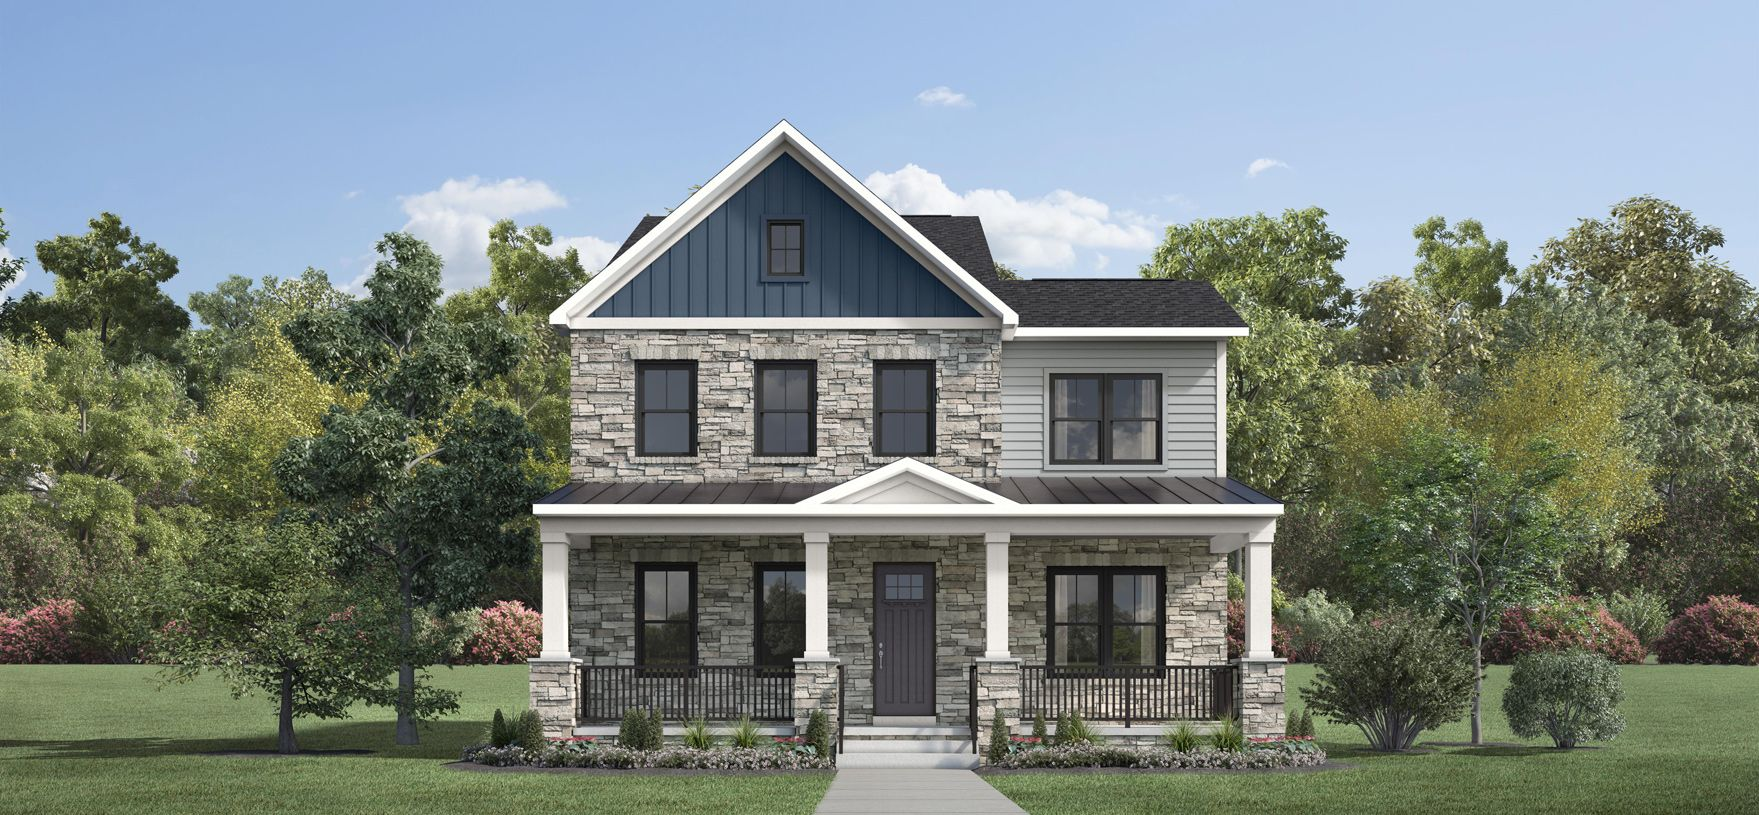 Elevation Image:The Craftsman